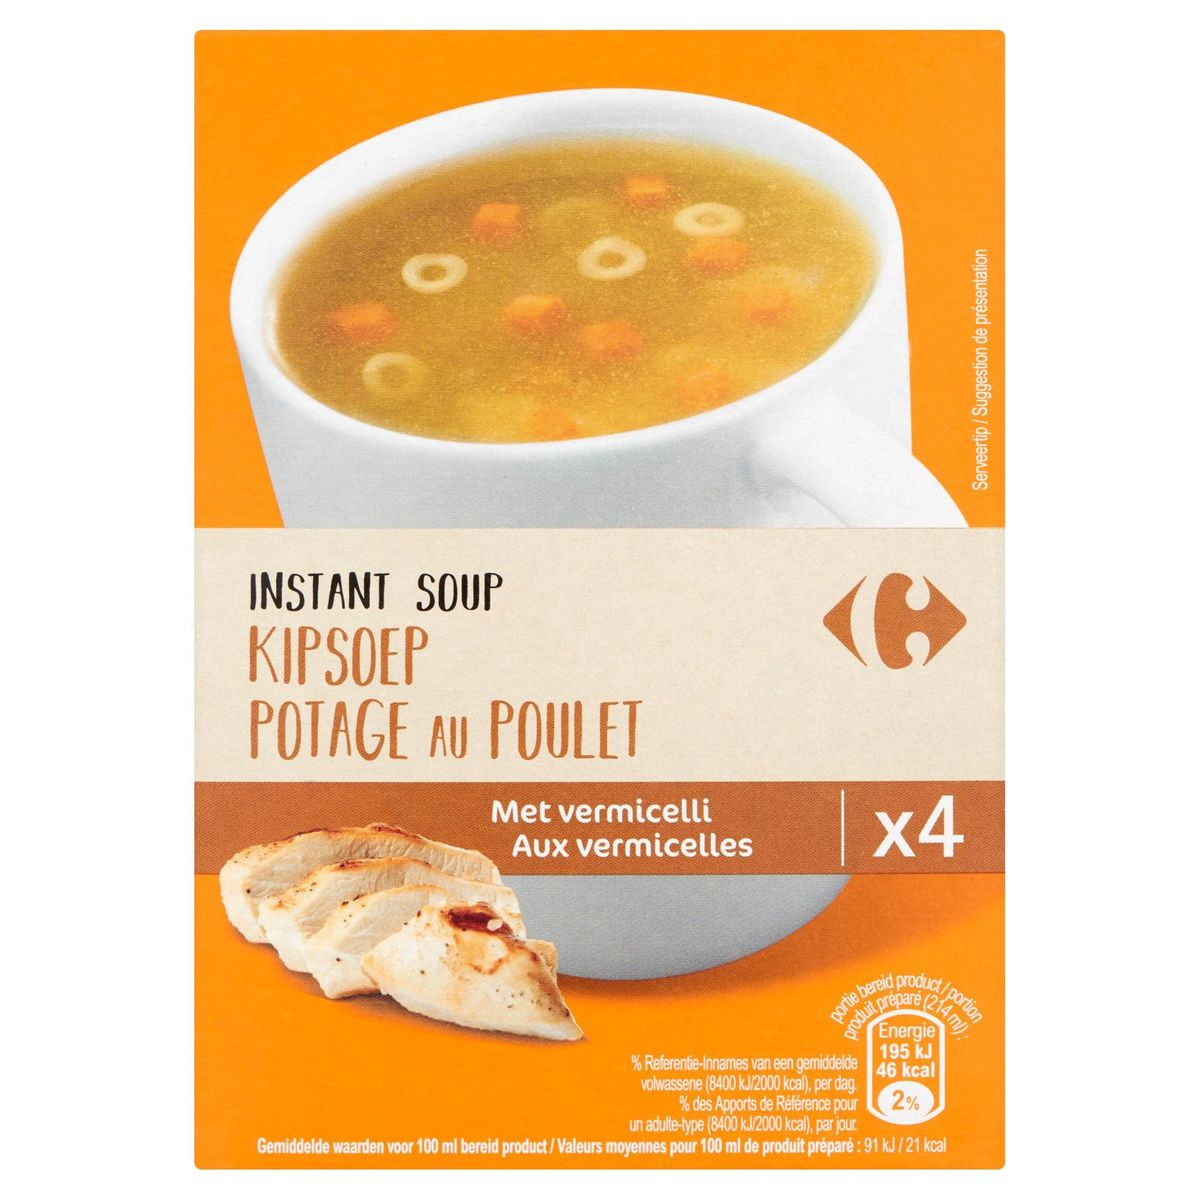 Carrefour Instant Soup Kipsoep met Vermicelli 4 x 14 g